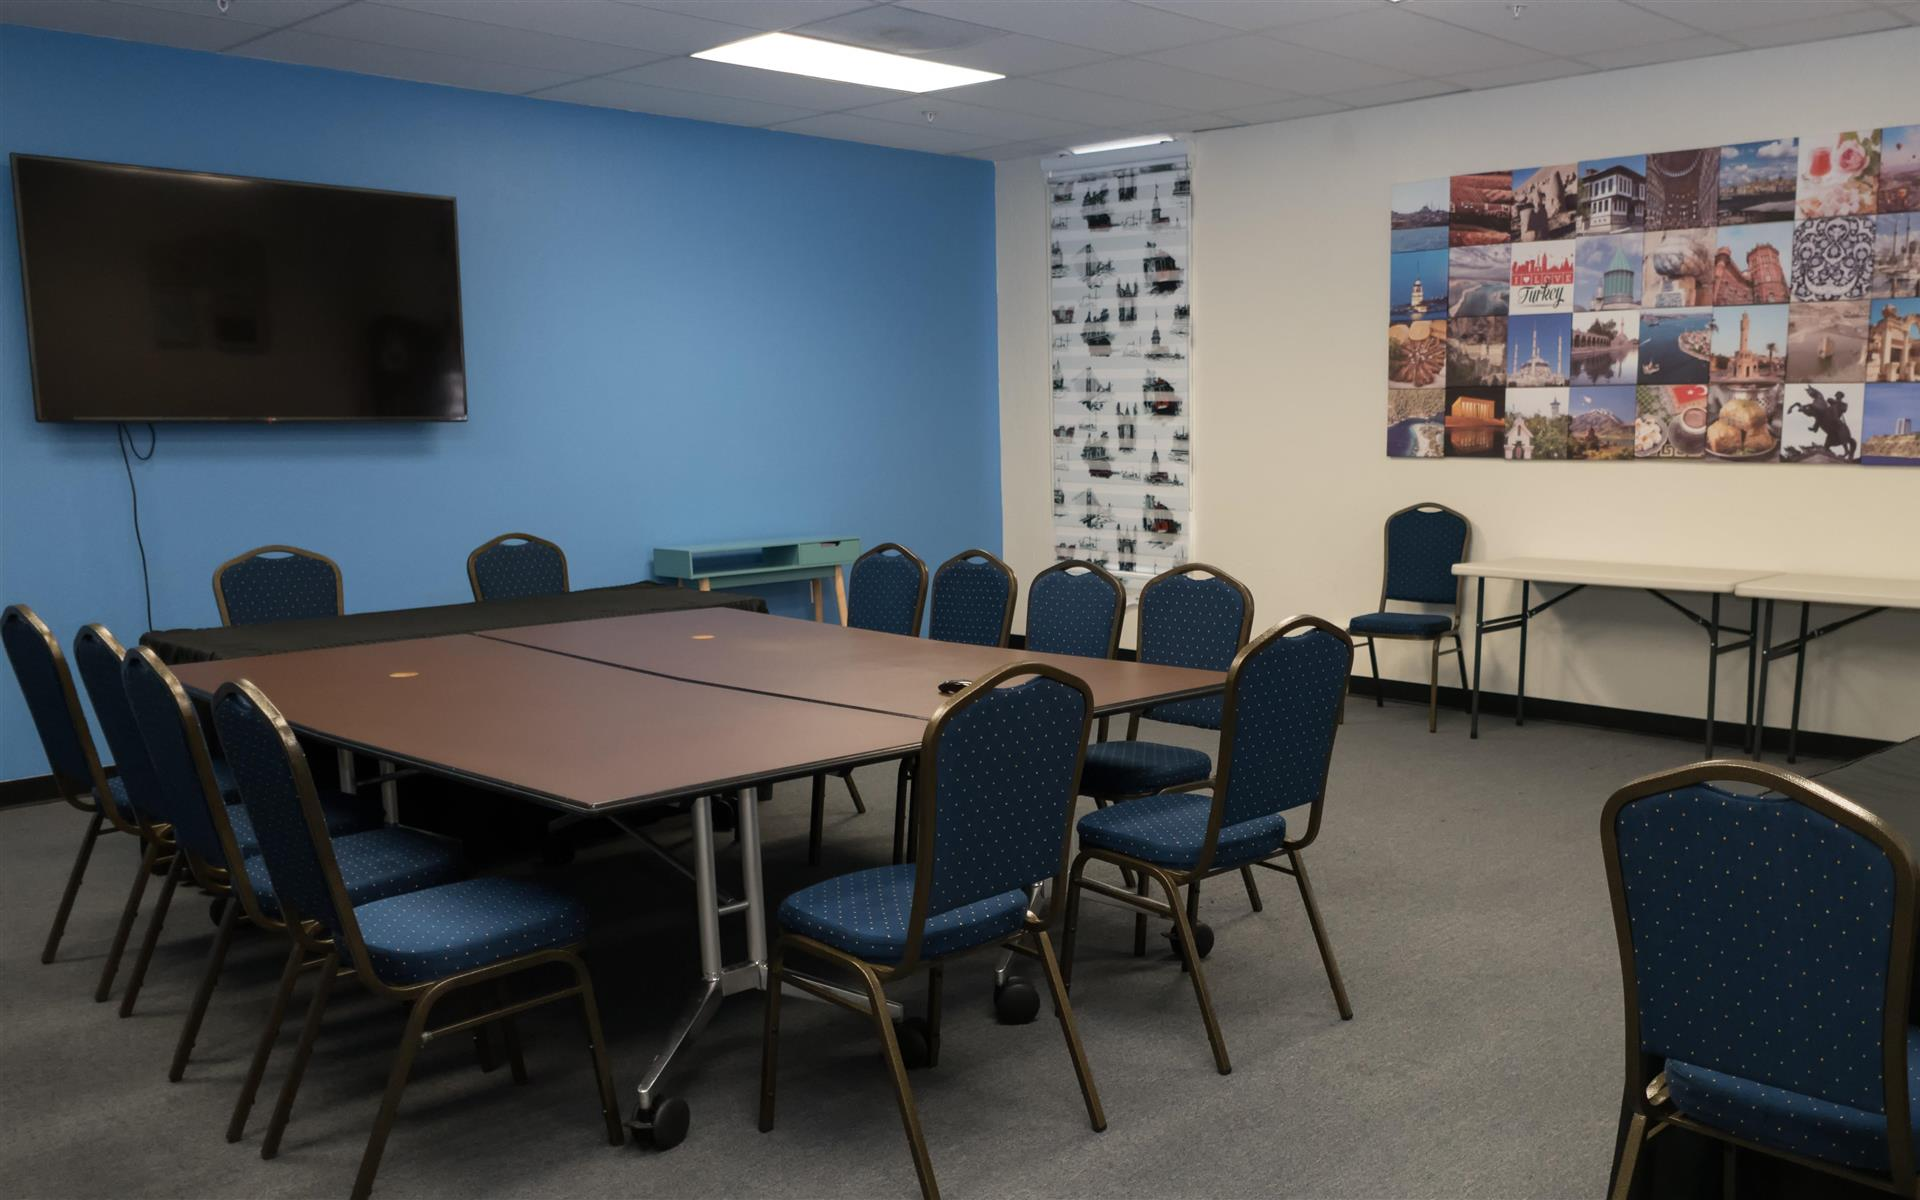 Bay Area Cultural Connections - Blue Meeting Room